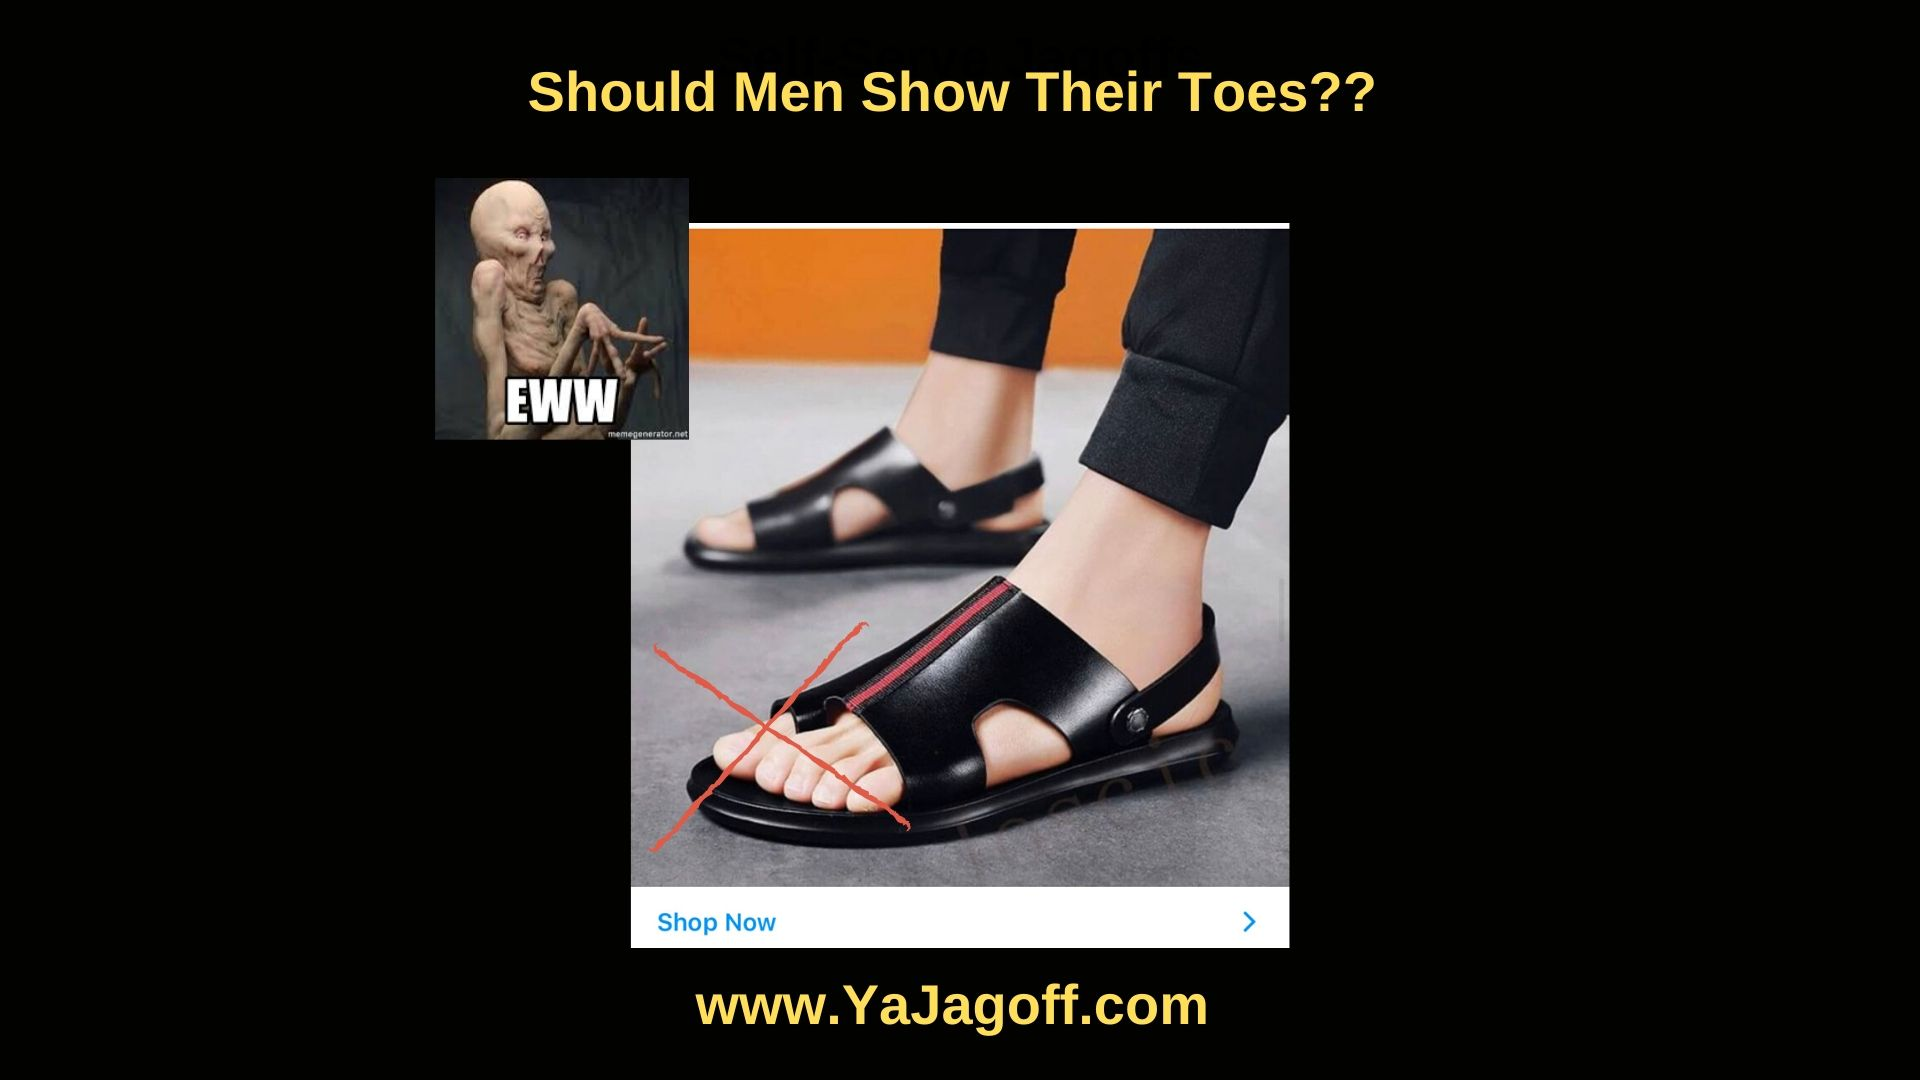 Should Men Show Their Toes